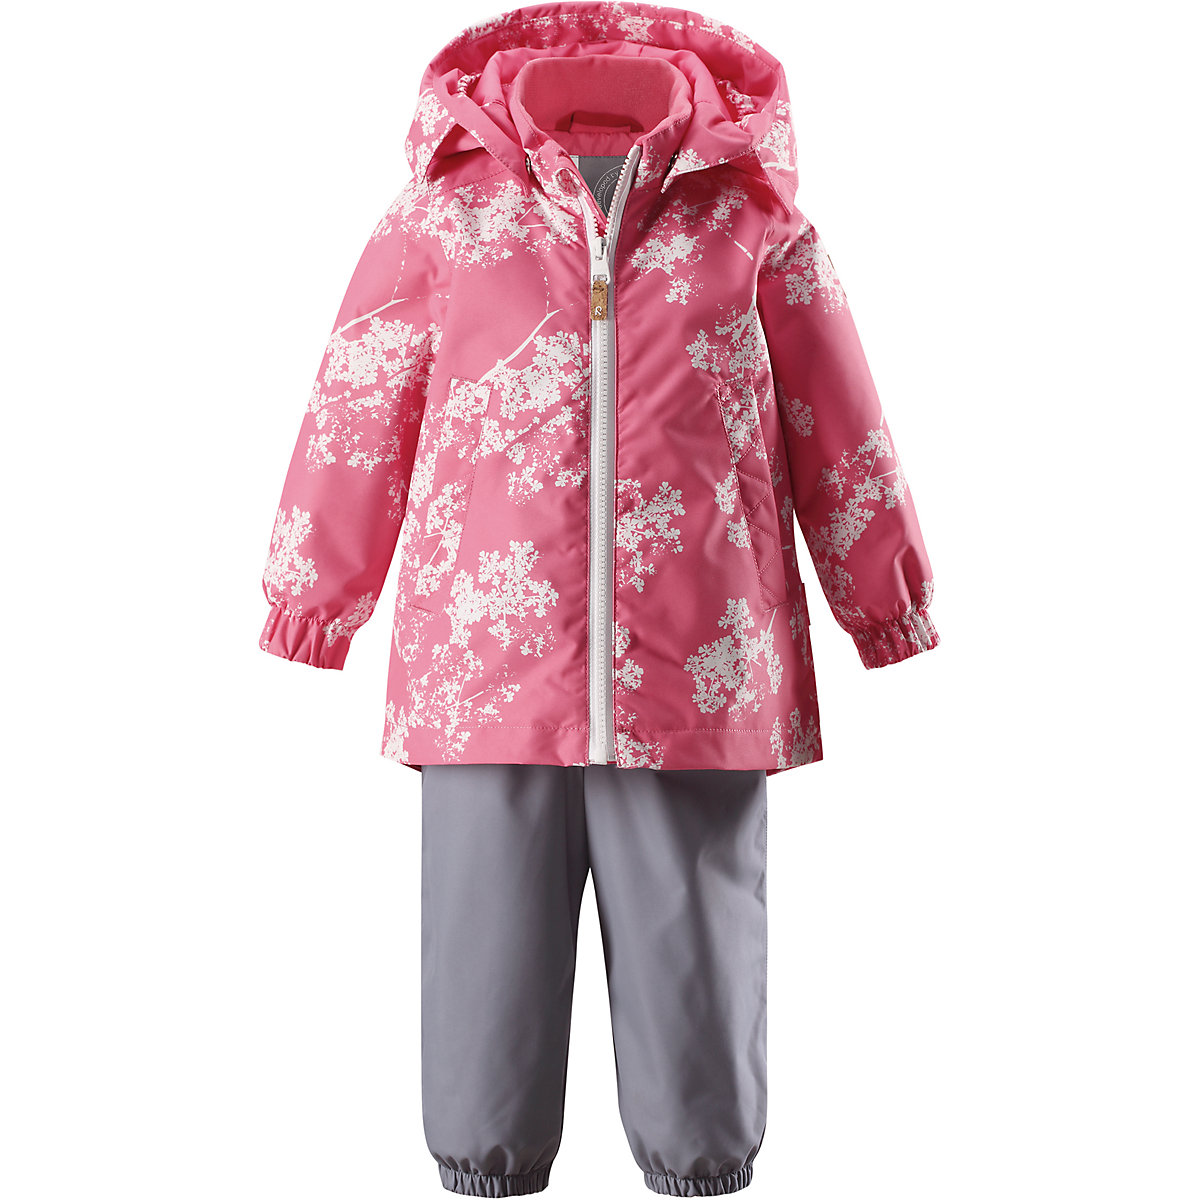 Baby's Sets Reima for girls 7636696 Suit Clothes Baby Kids Clothing Boy Girl Stuff children clothing set kids girl clothes 2016 girls sets brand floral dobby kids tracksuit jacket dress girls clothing sets